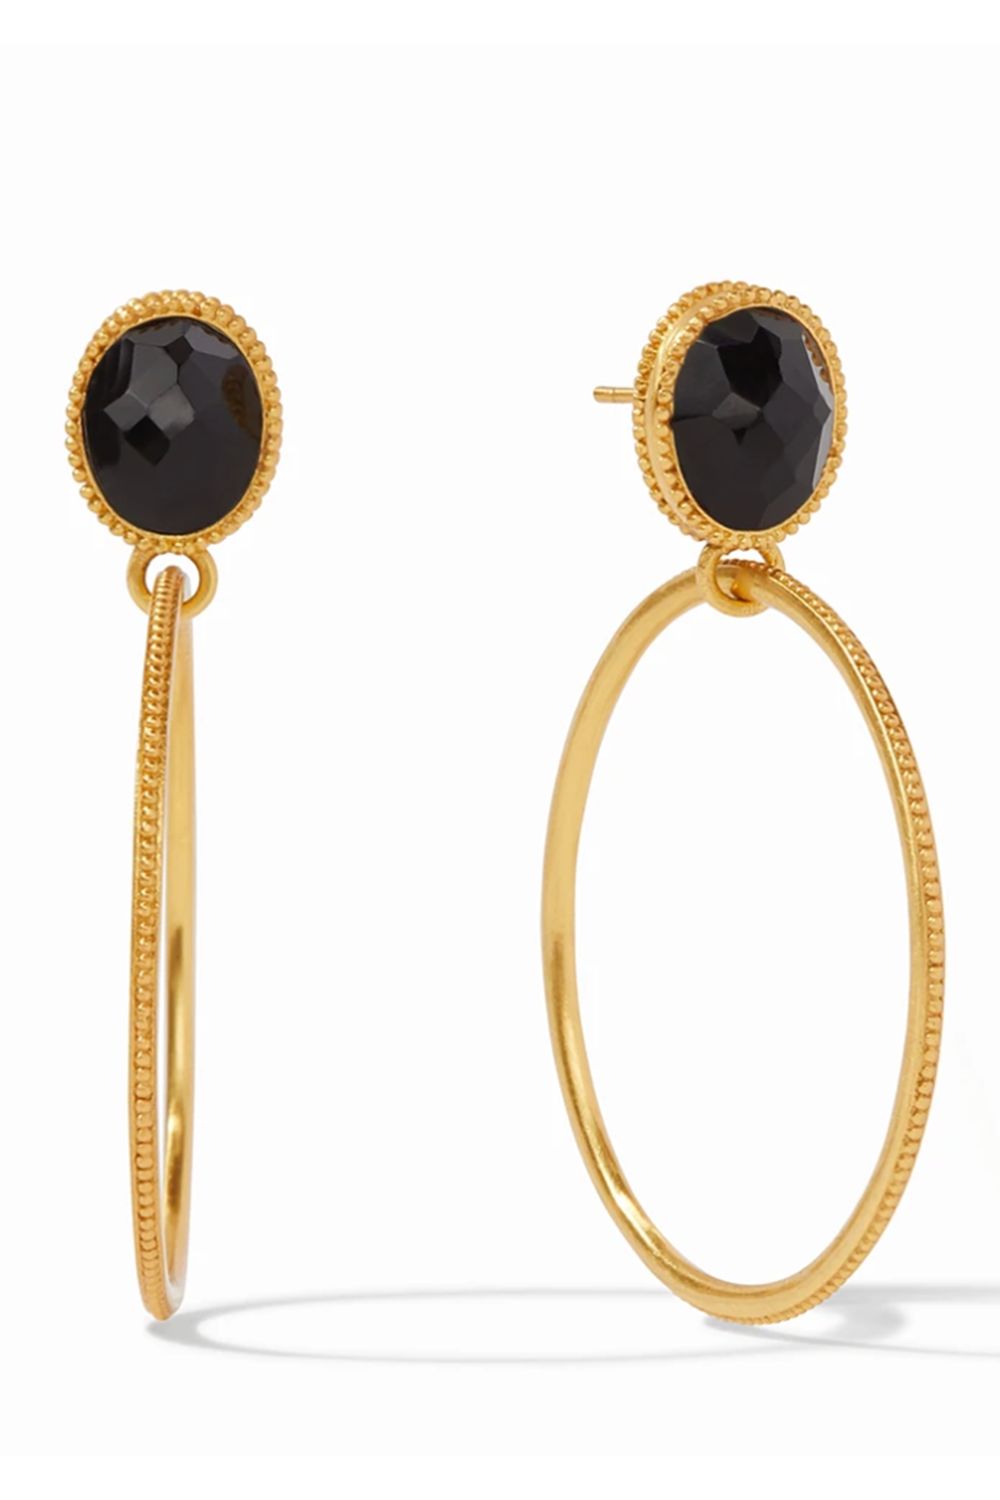 Vos Verona Statement Earring - Obsidian Black